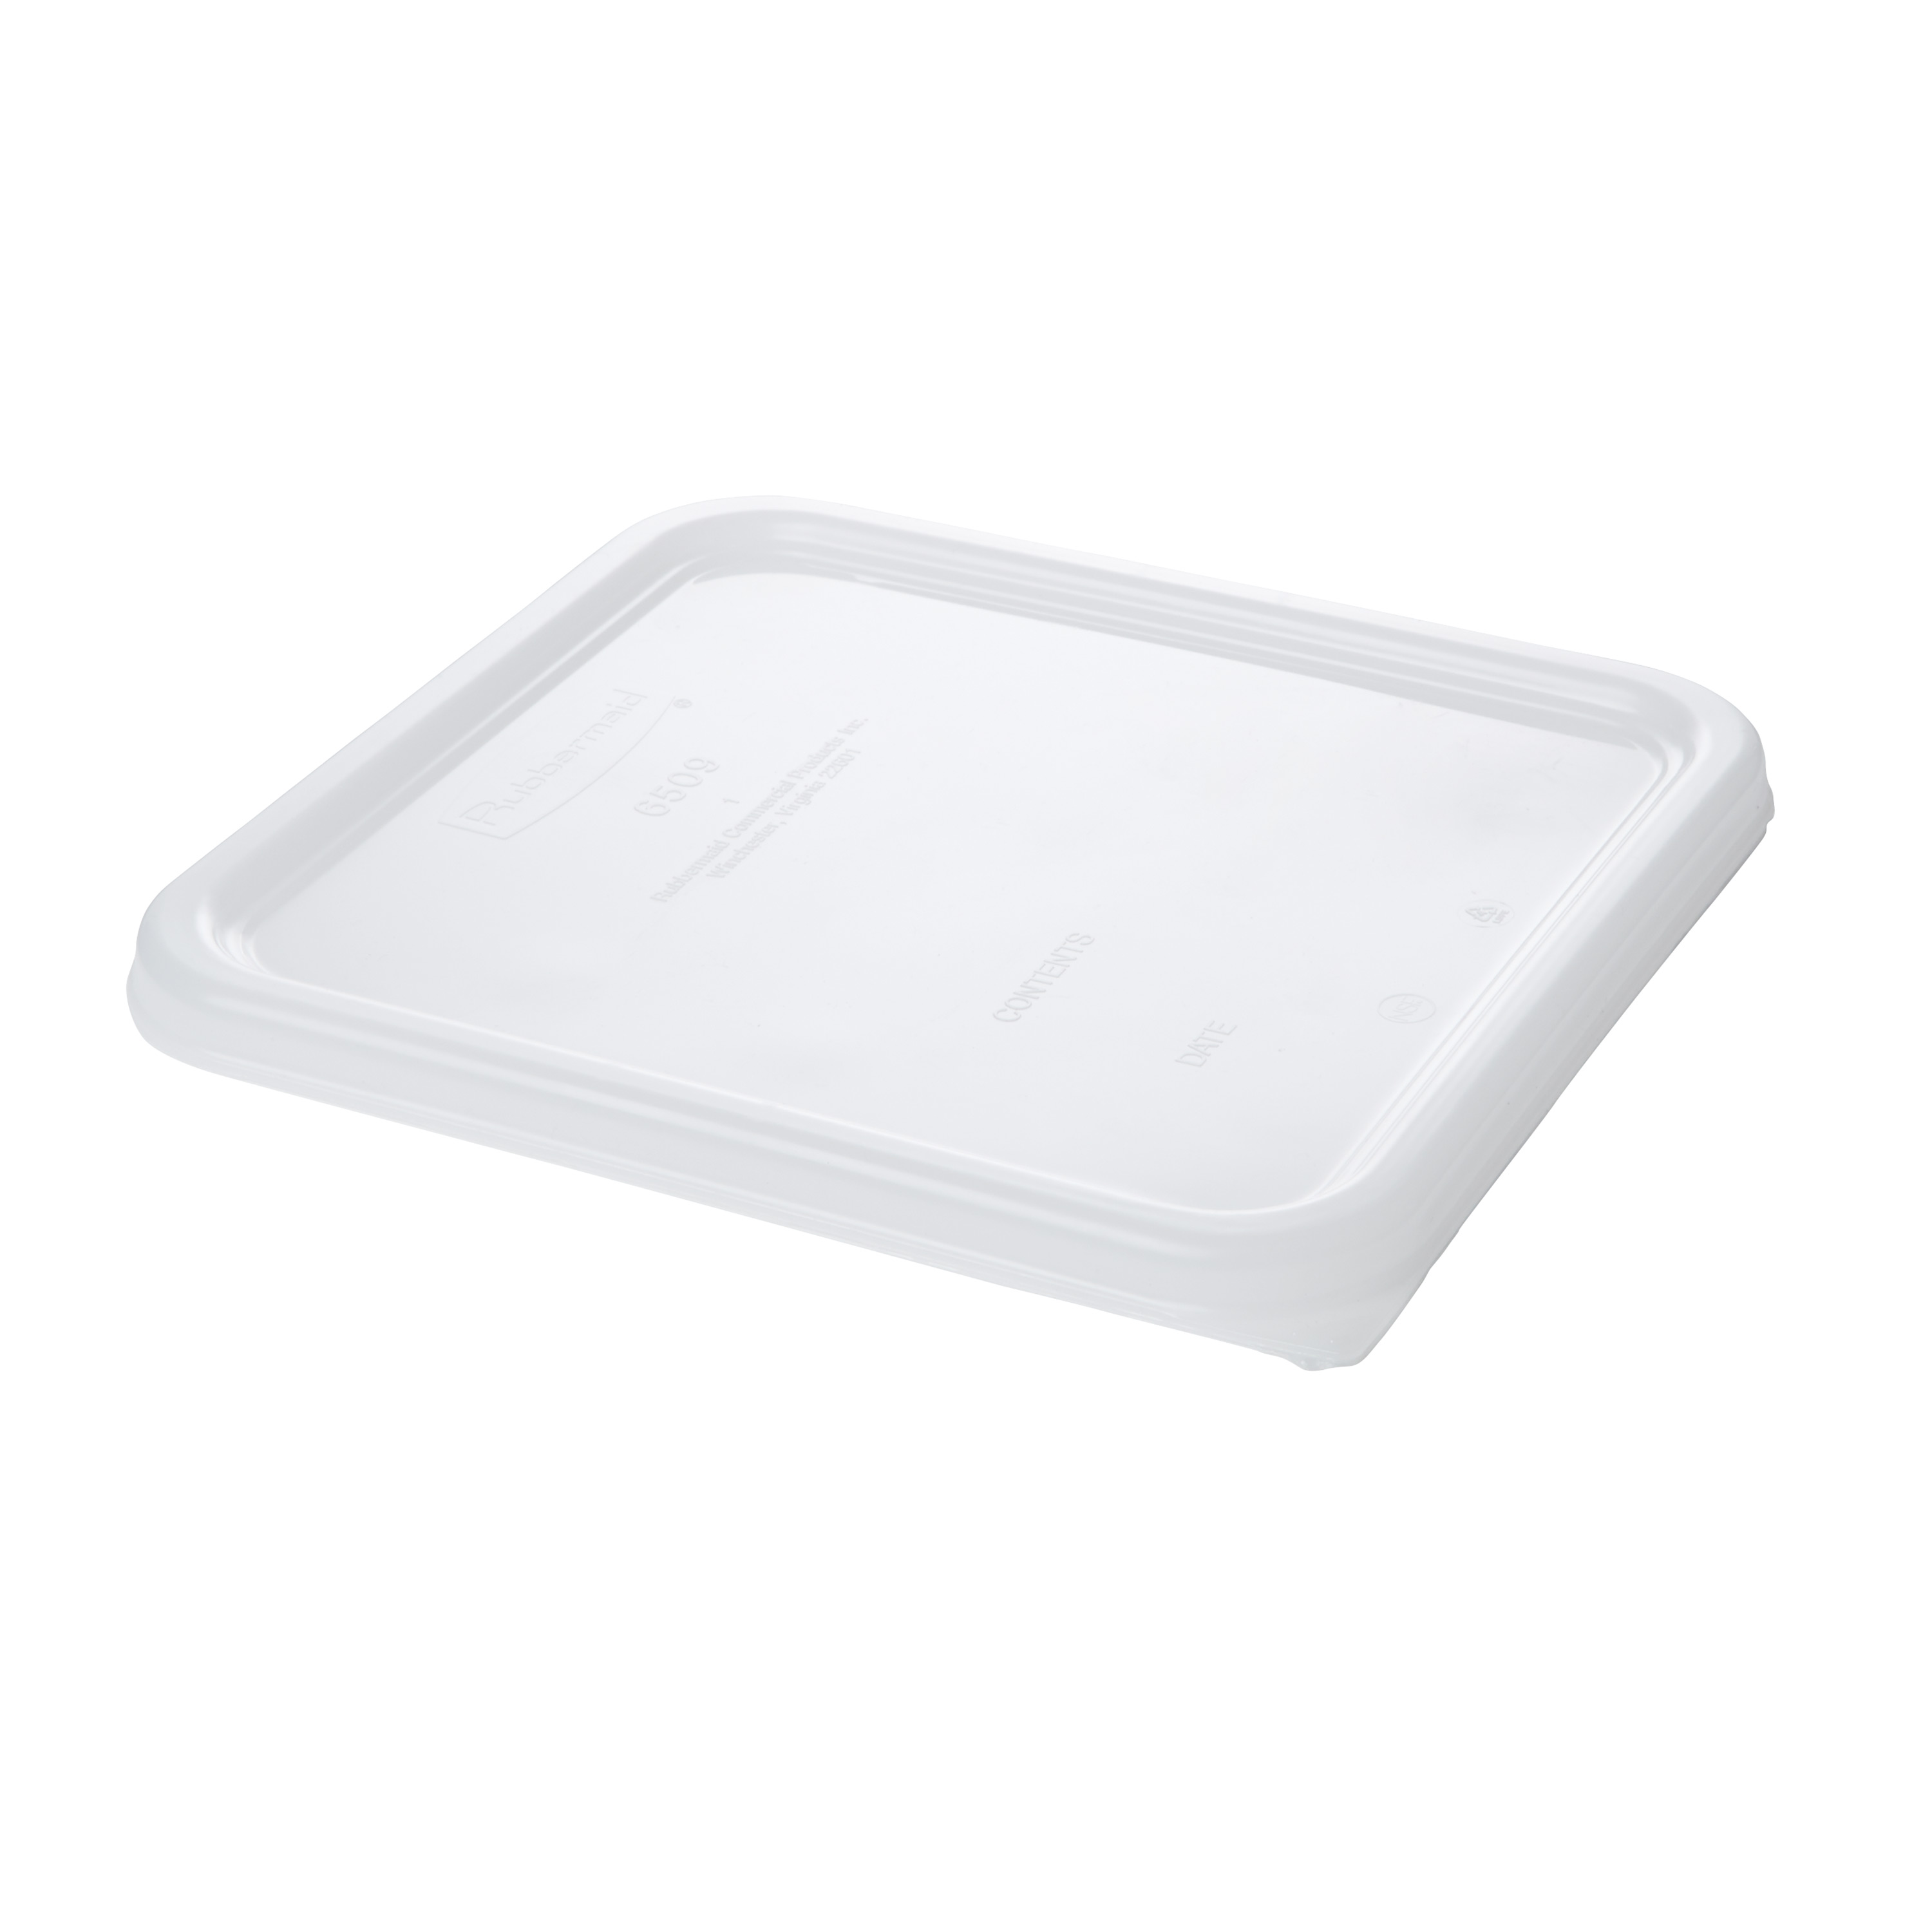 Rubbermaid Commercial Products FG650900WHT food storage container cover